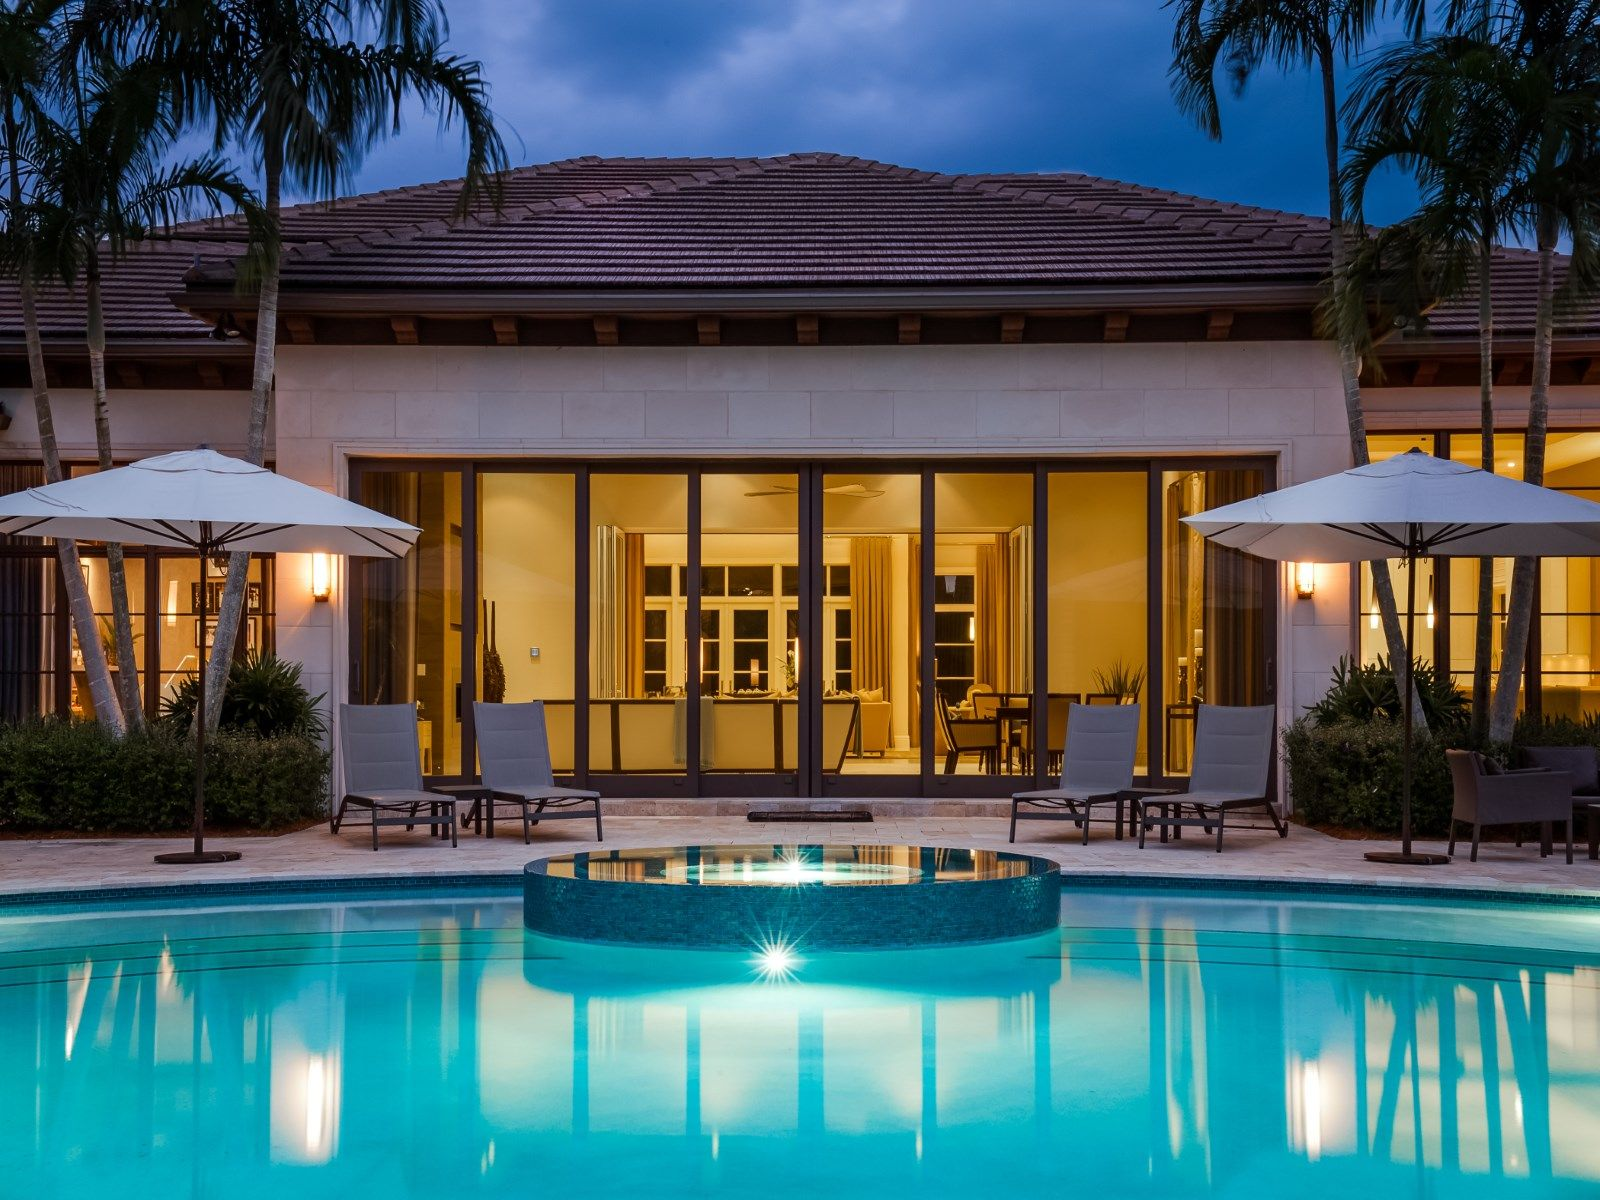 View Price, Pictures And Listing Information For 11610 Charisma Way, Palm  Beach Gardens, FL Sothebyu0027s International Realty Offers A Wide Selection Of  Luxury ...